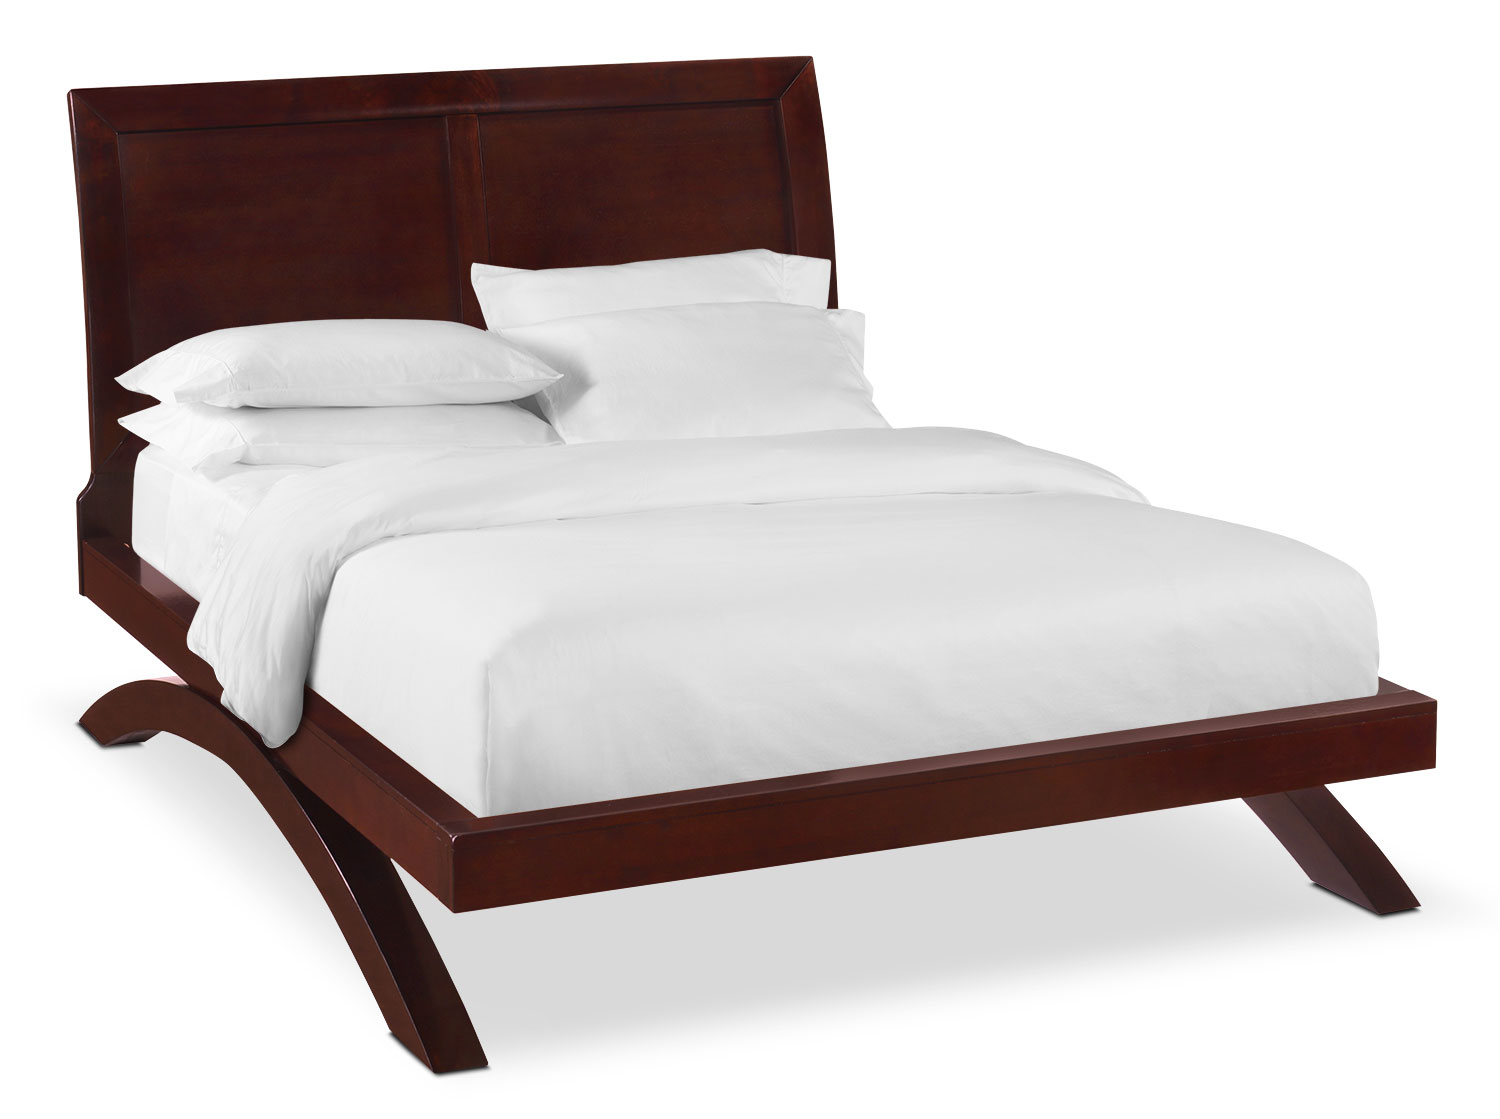 Bedroom Furniture - Jaden Queen Arch Bed - Merlot